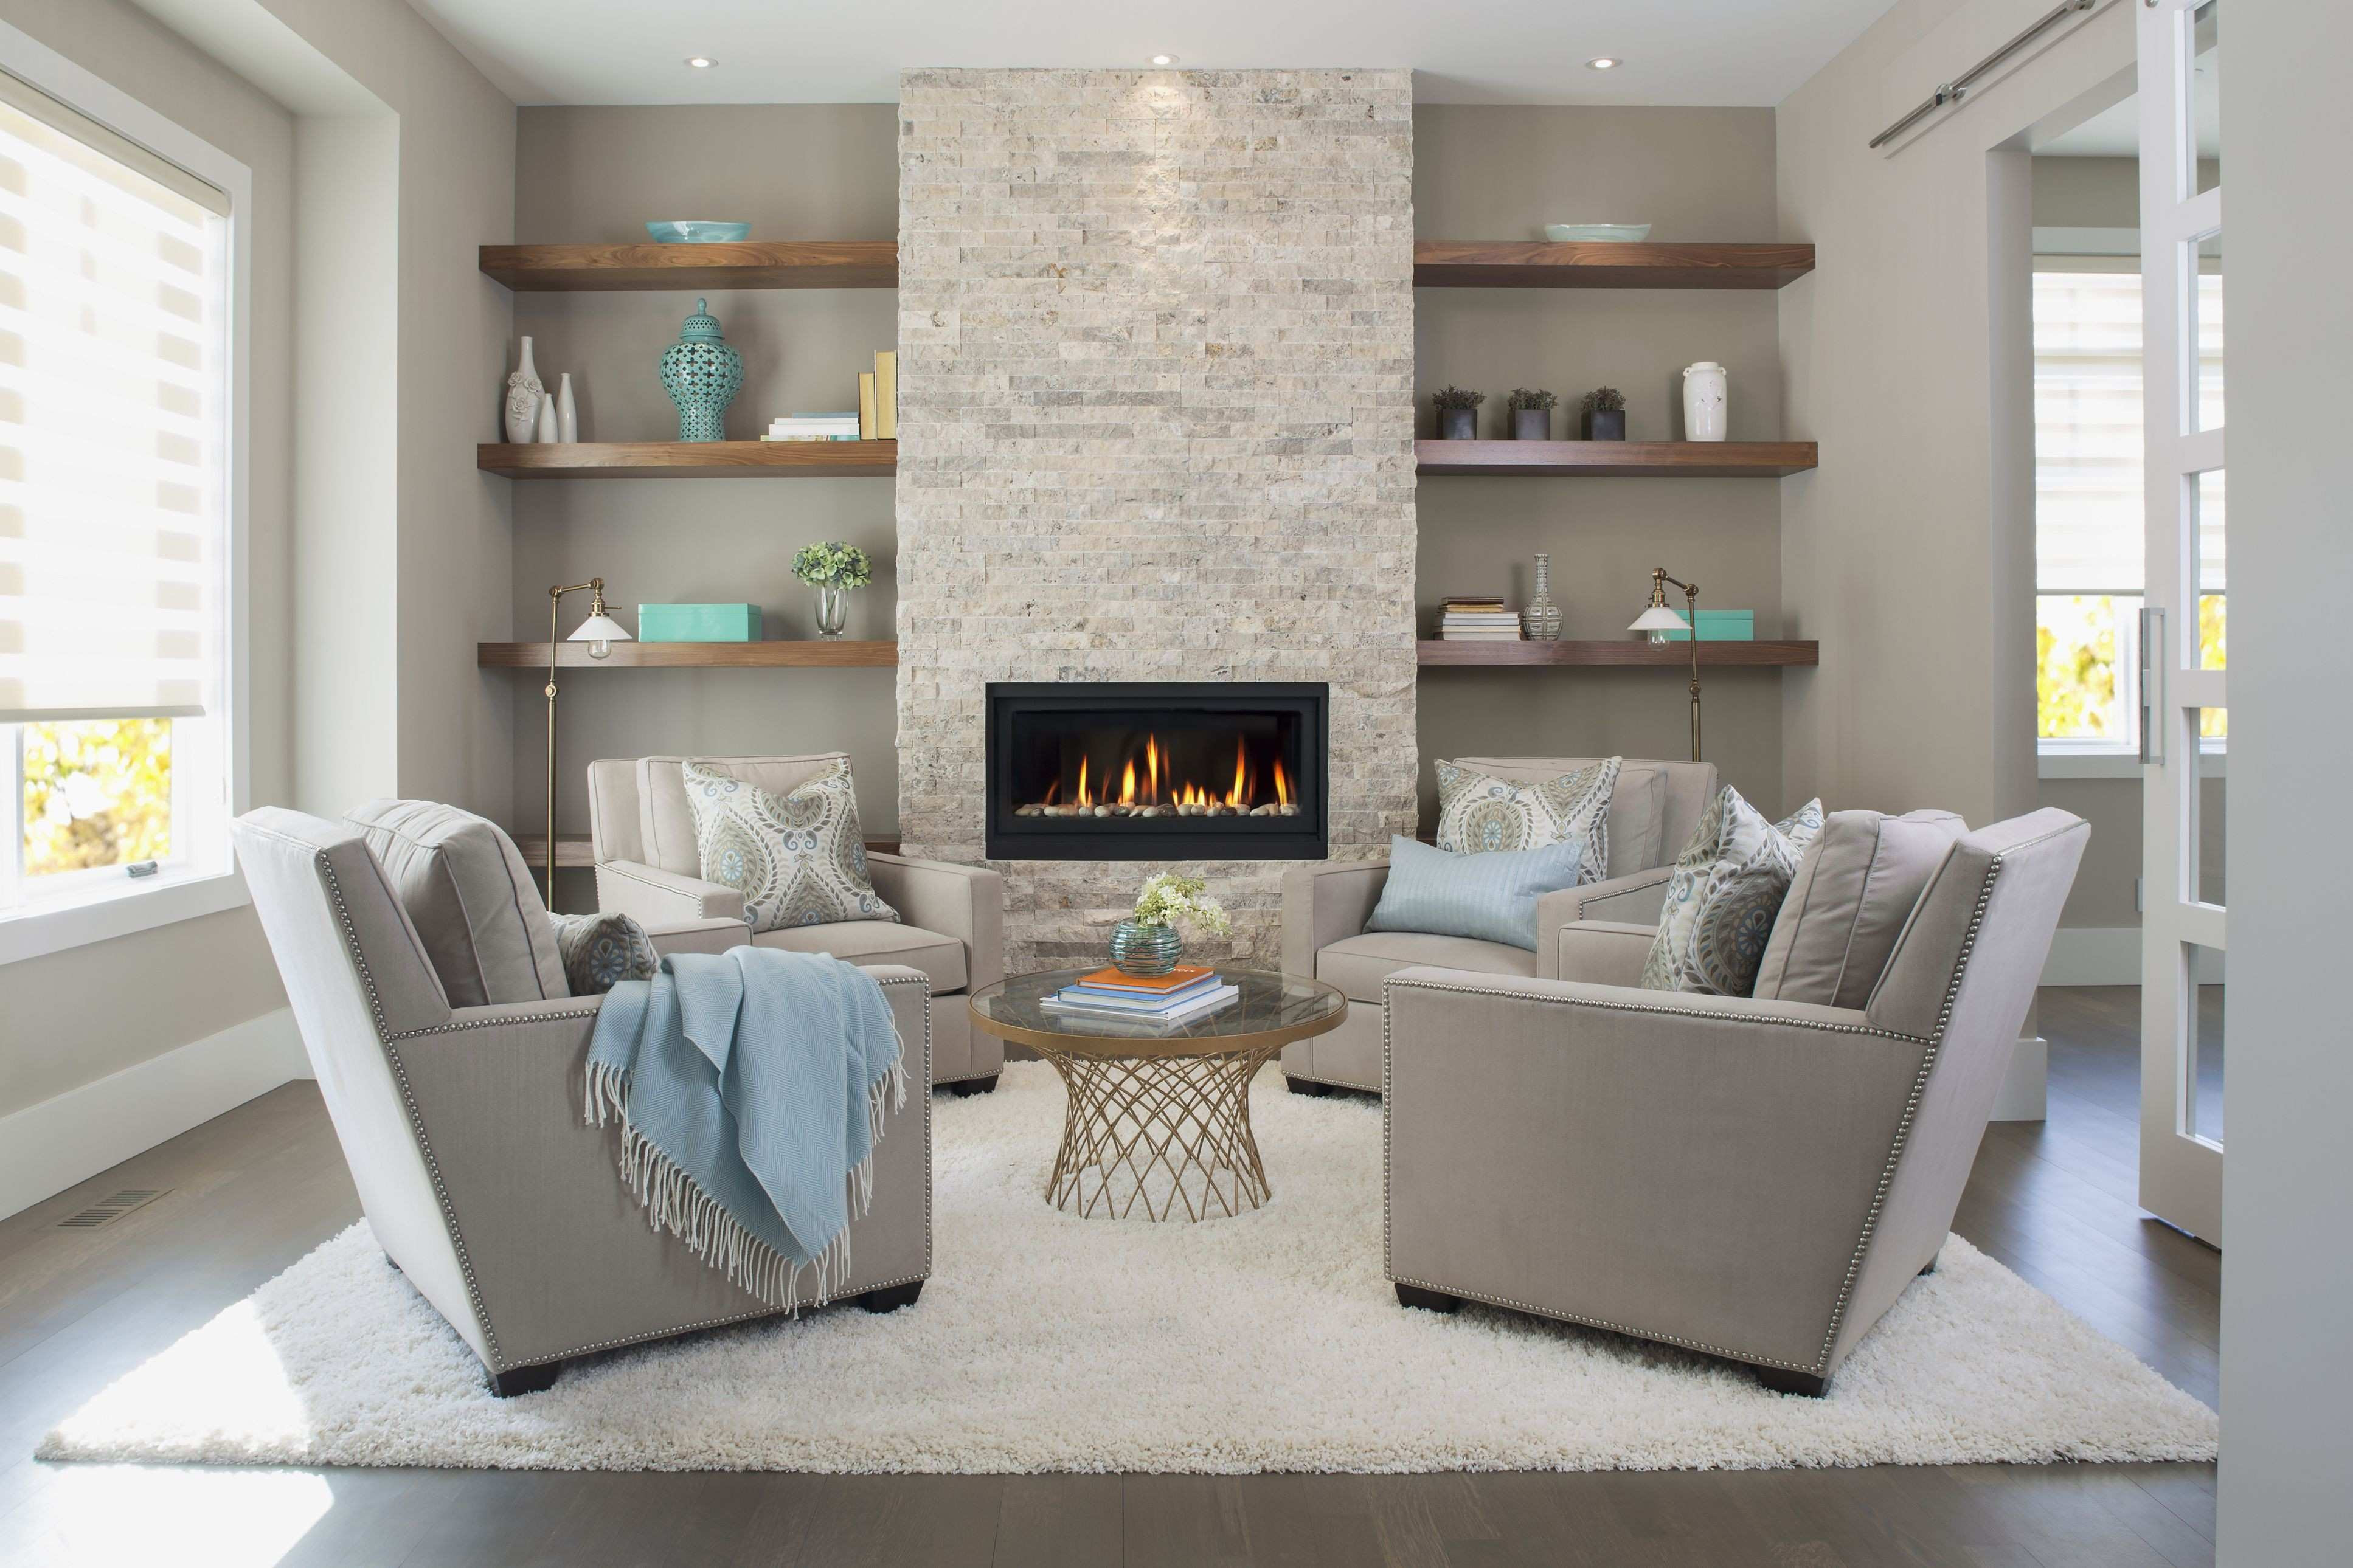 hardwood floors or carpet of decorating ideas for living rooms with hardwood floors beautiful inside decorating ideas for living rooms with hardwood floors beautiful should you get an area rug 5